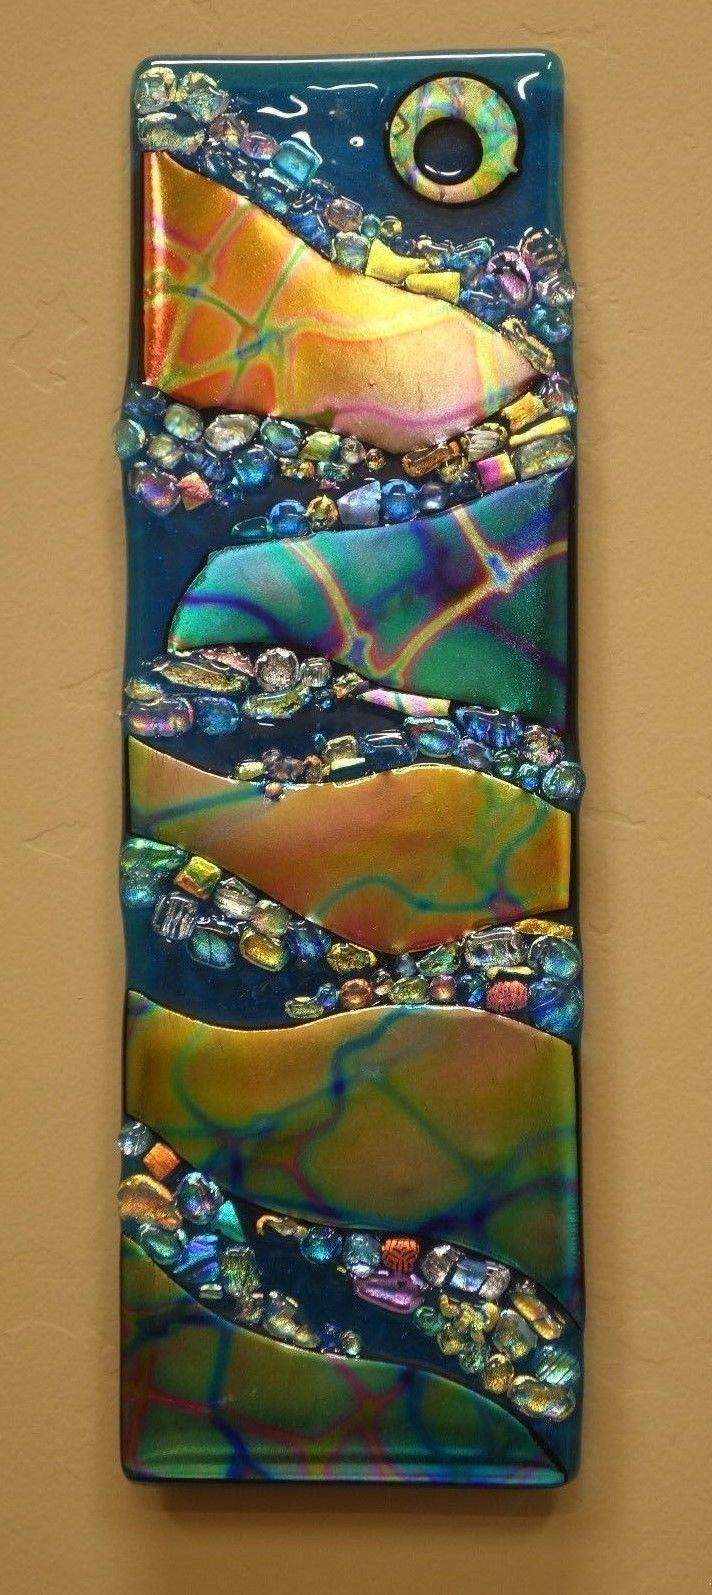 1775 Best Fused Glass & Etc Images On Pinterest   Stained Glass Intended For Fused Glass Wall Art Devon (Image 3 of 20)